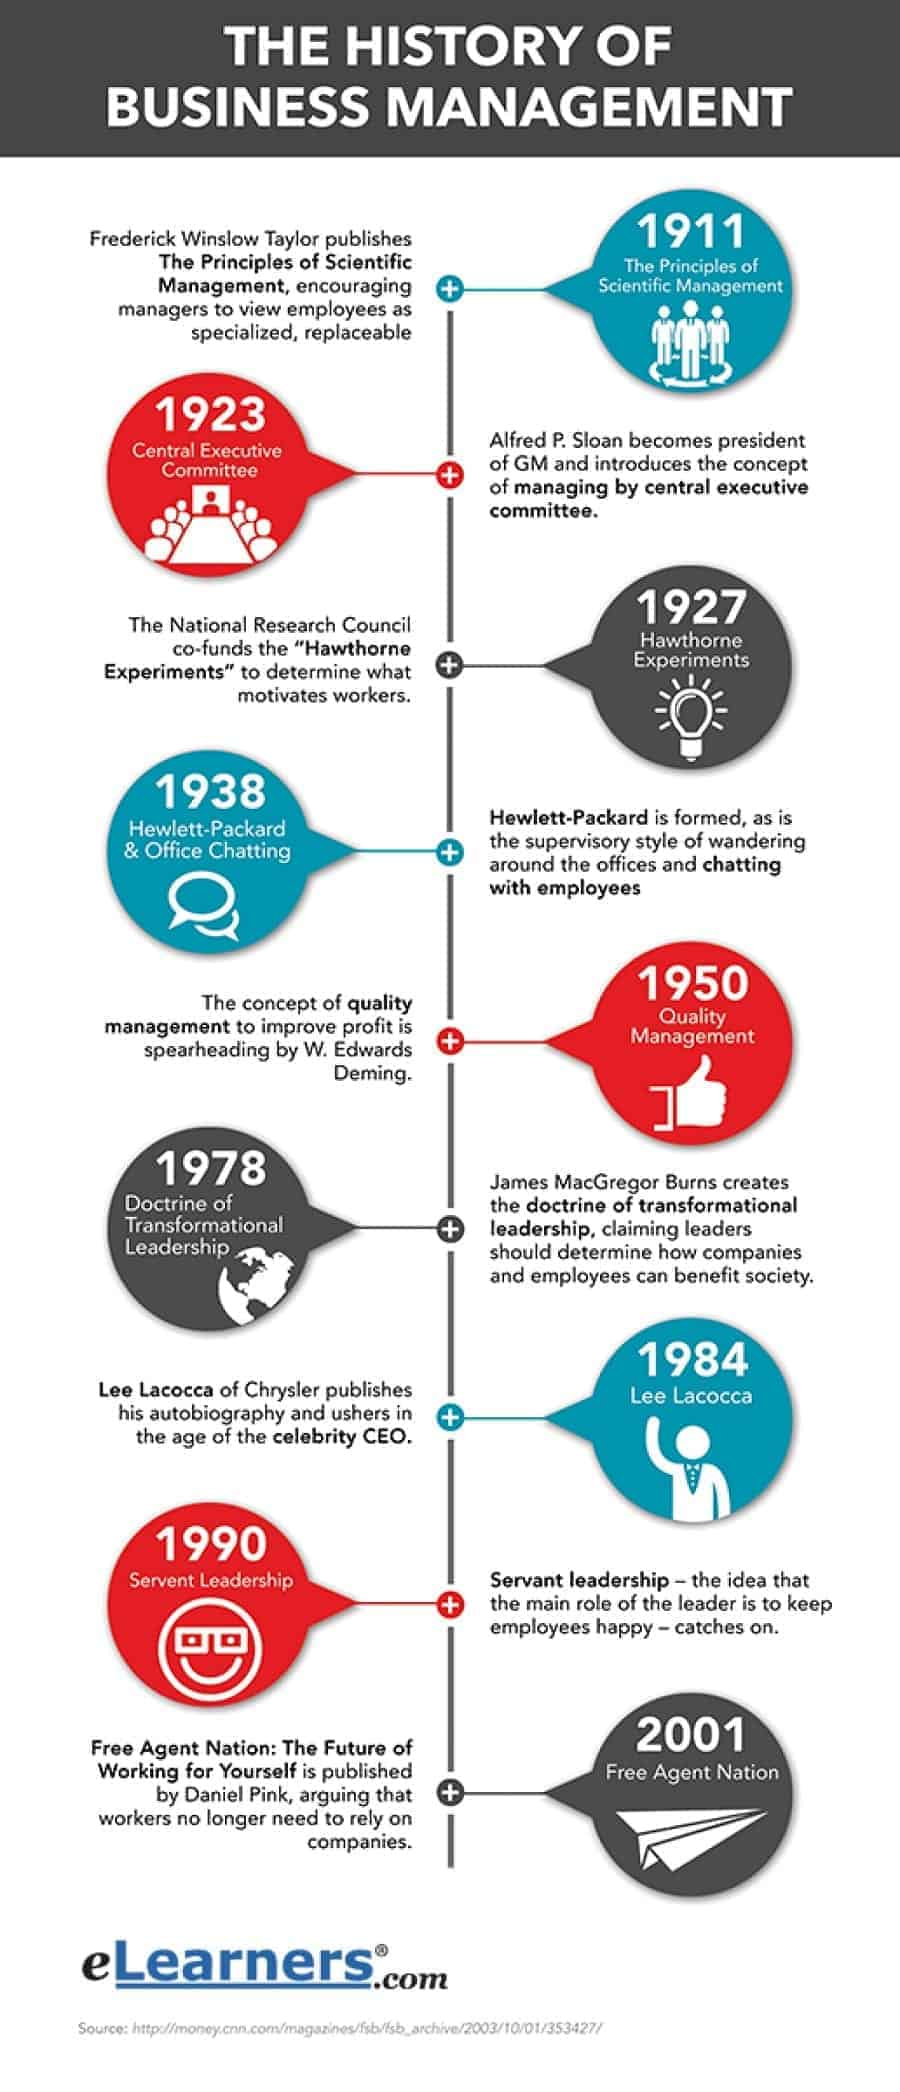 business management history infographic